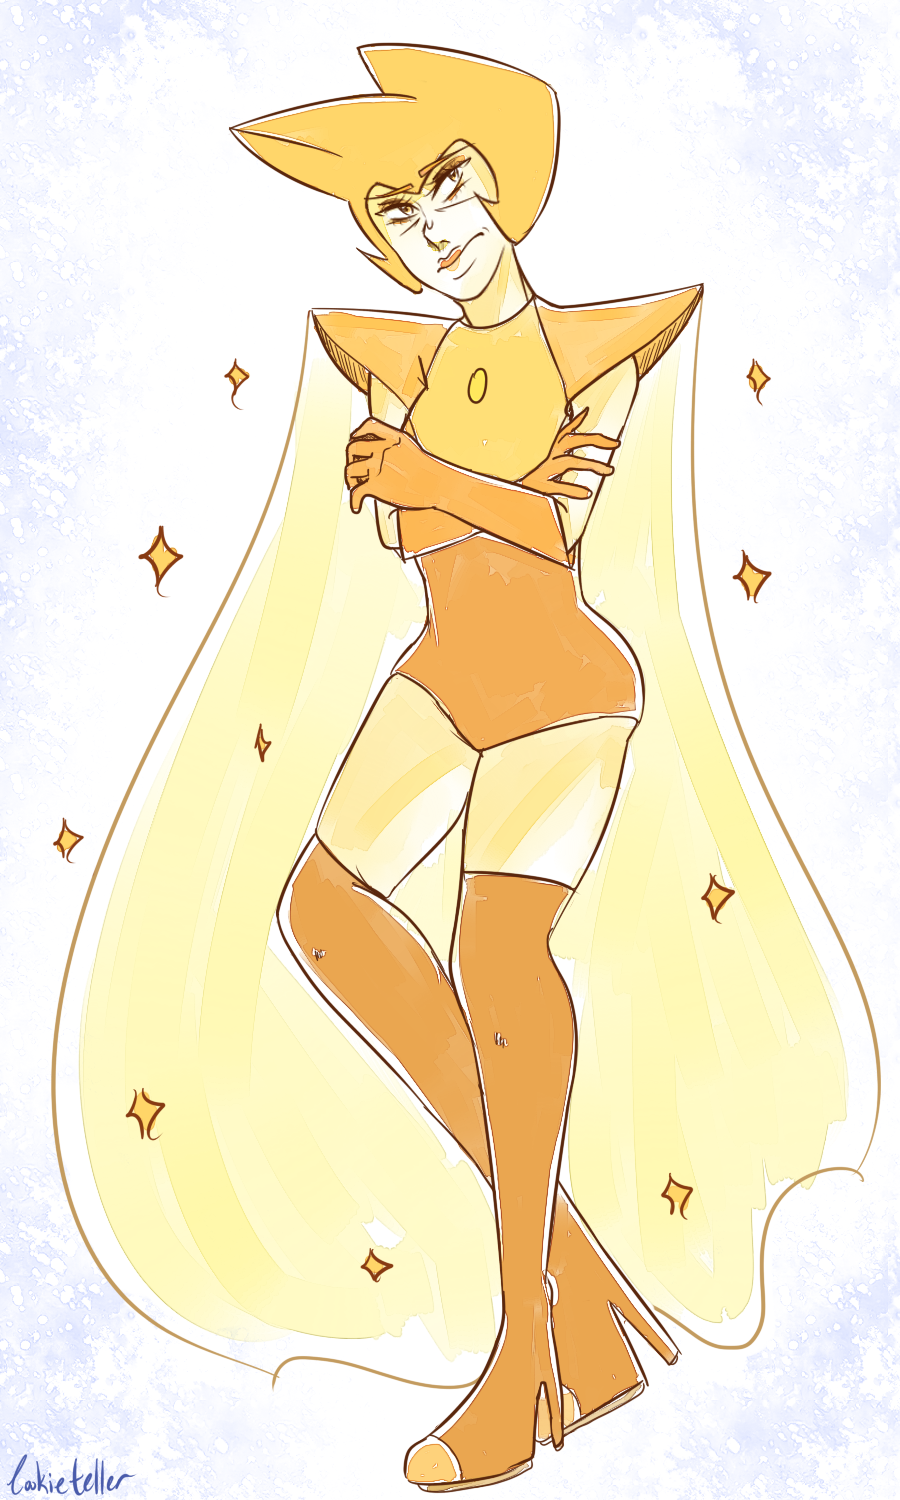 I wanted to draw one of Rebecca's early Yellow Diamond designs. Hehe.